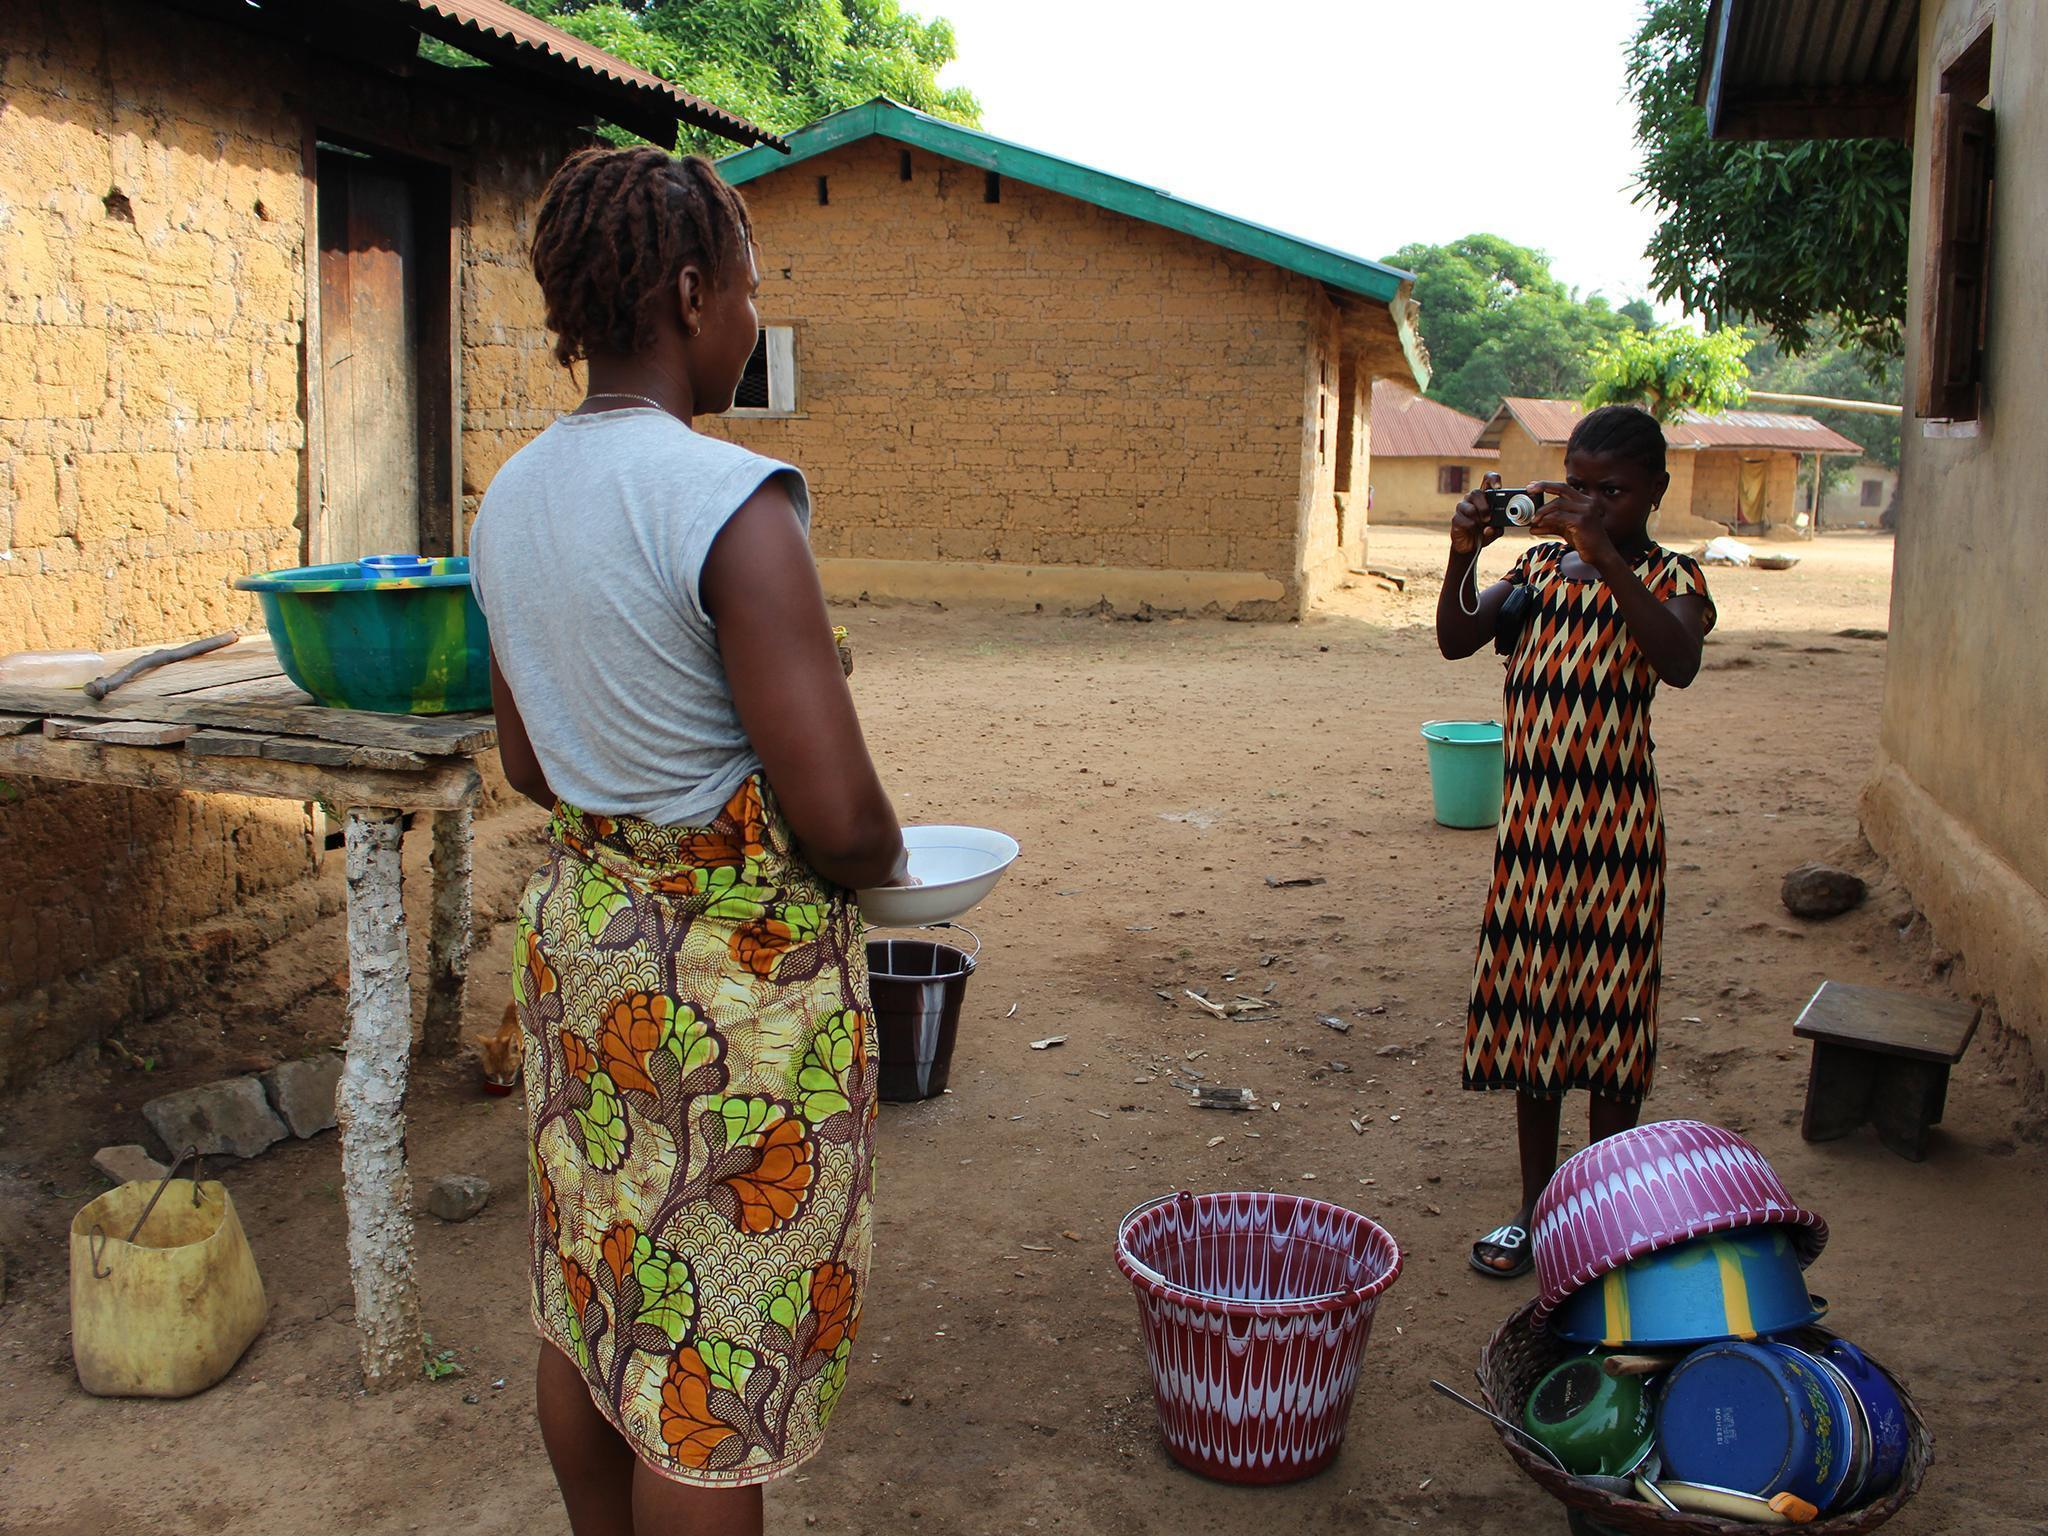 Pictures reveal how a village in Sierra Leone is recovering from the Ebola crisis